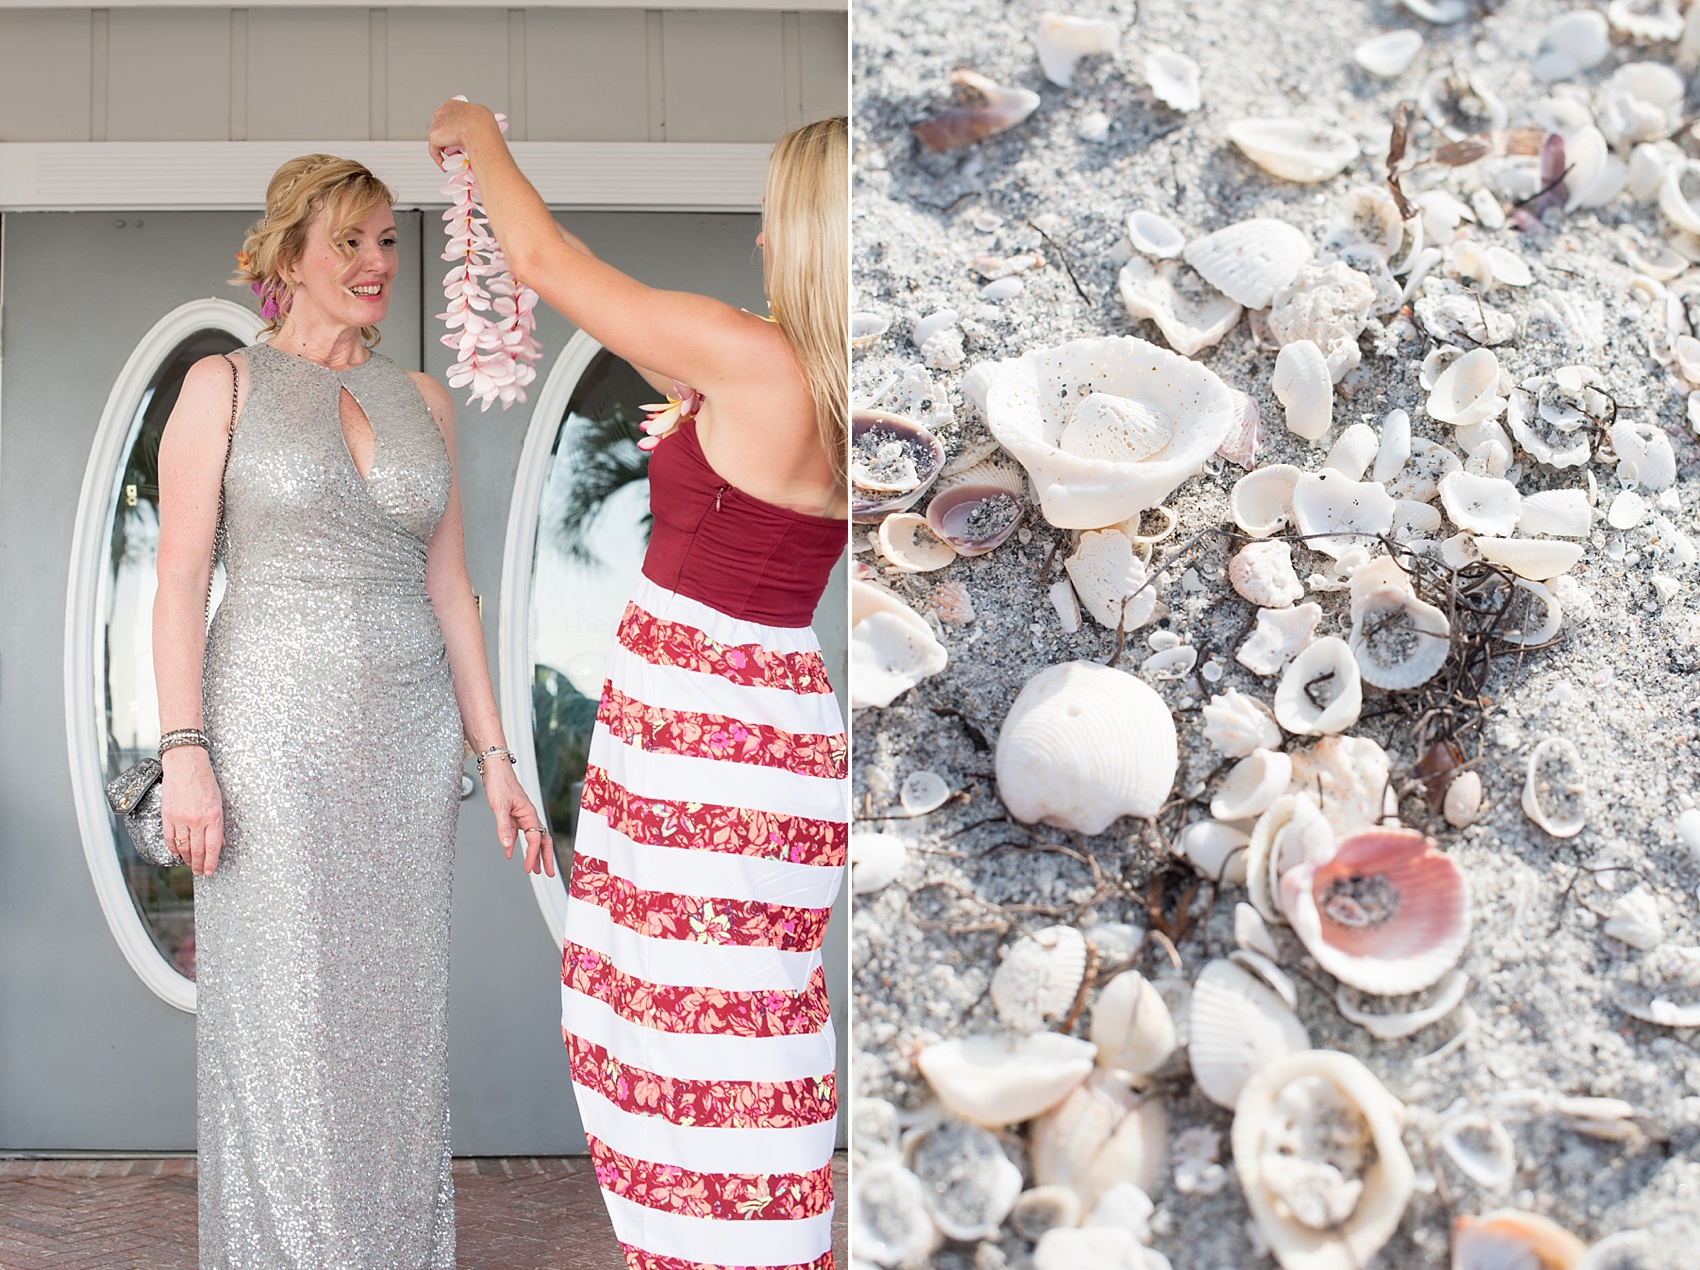 Captiva Island wedding at Tween Waters Inn. Photos by Mikkel Paige Photography.